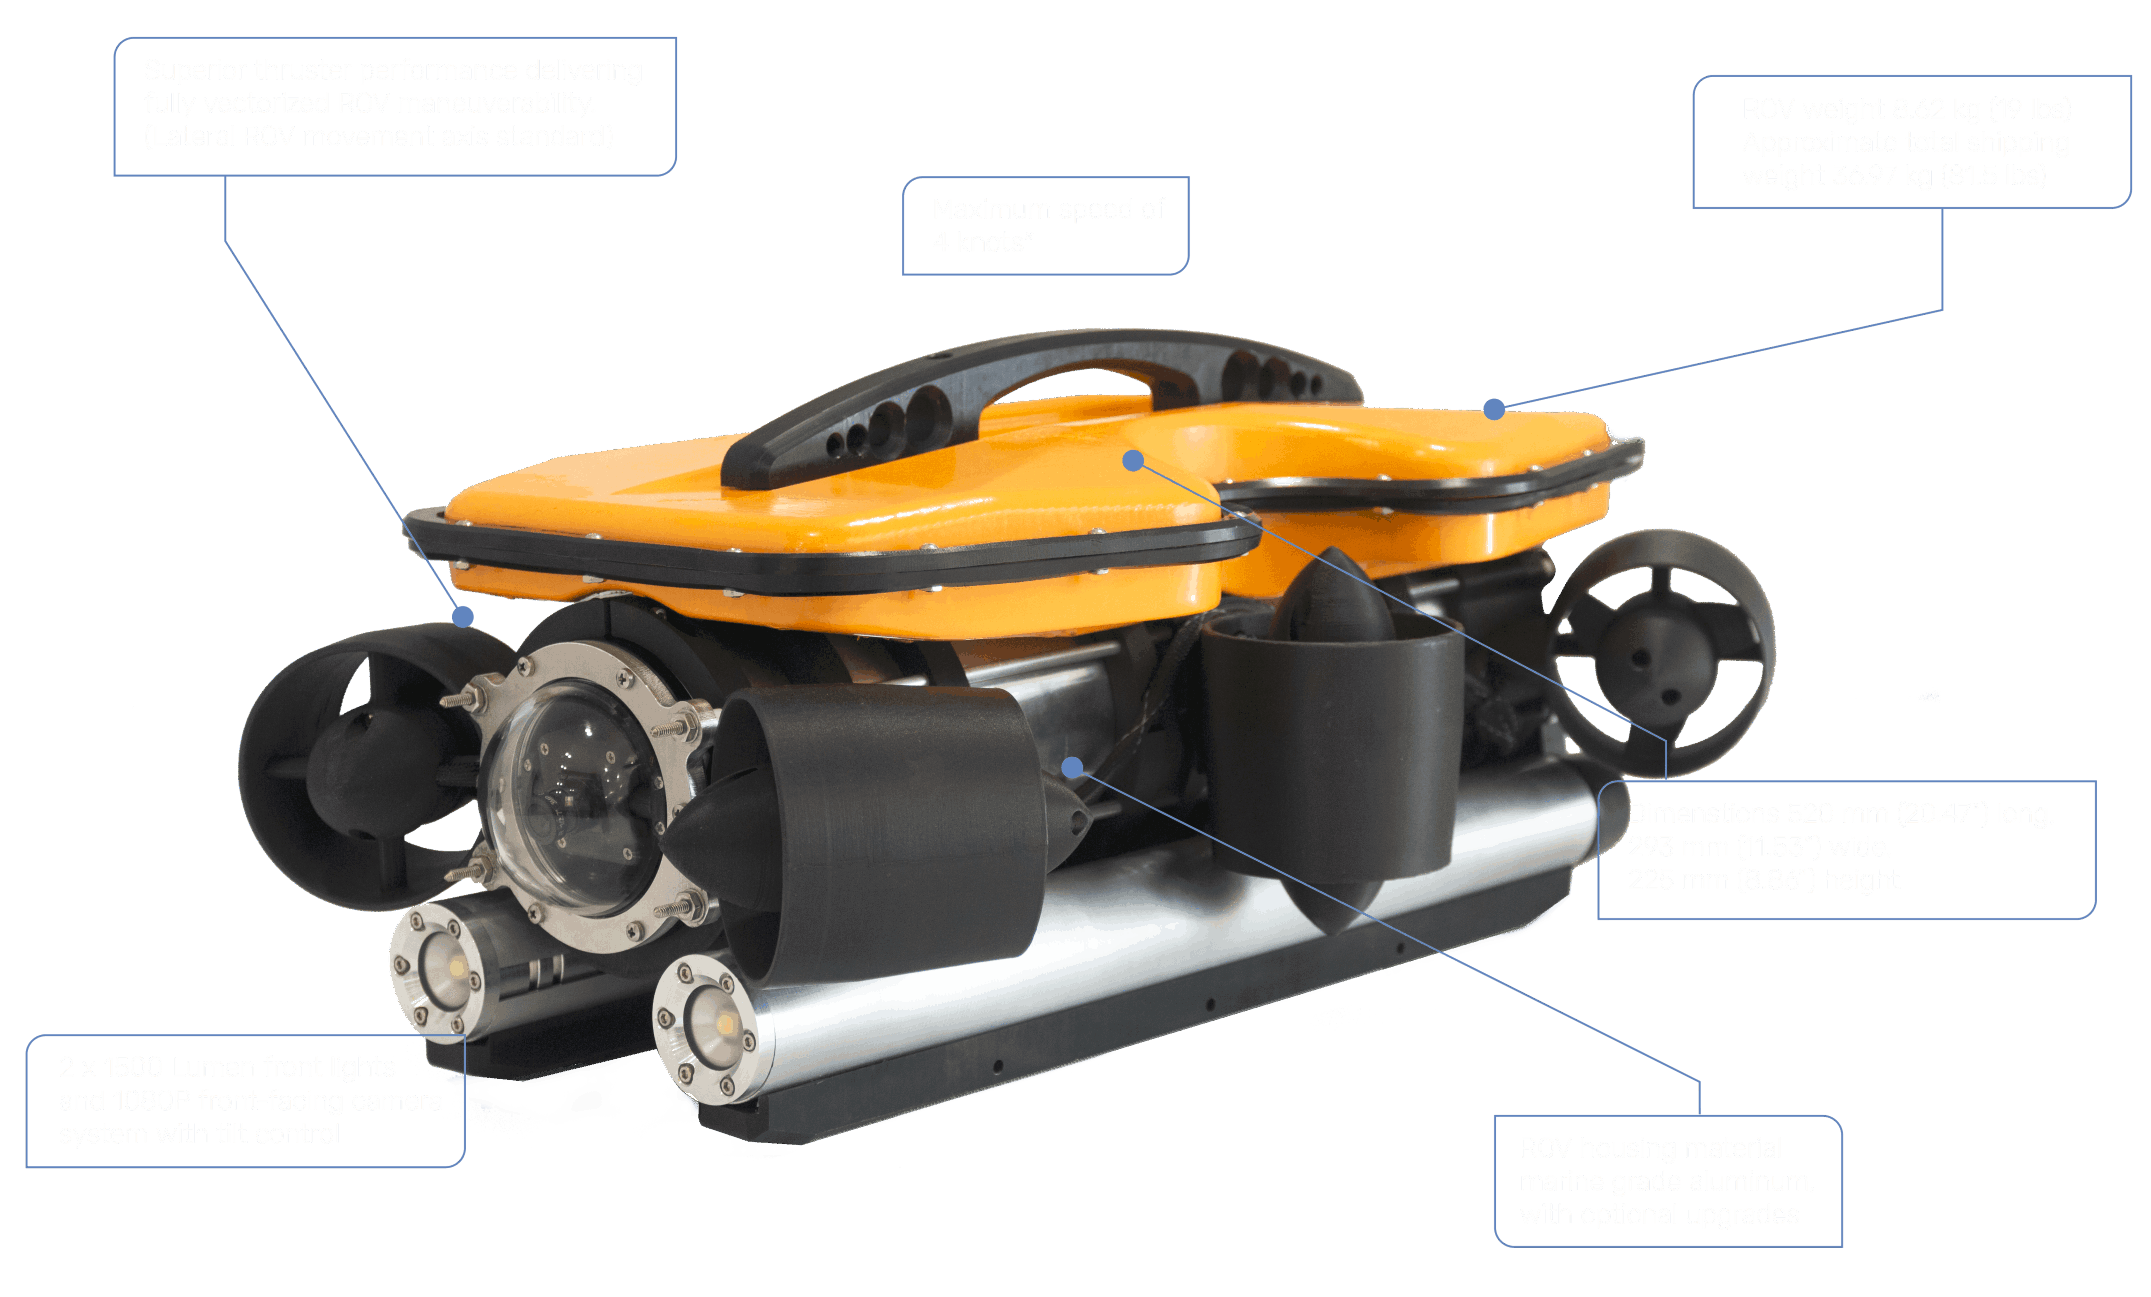 Oceanus Mini ROV is loaded with powerful features